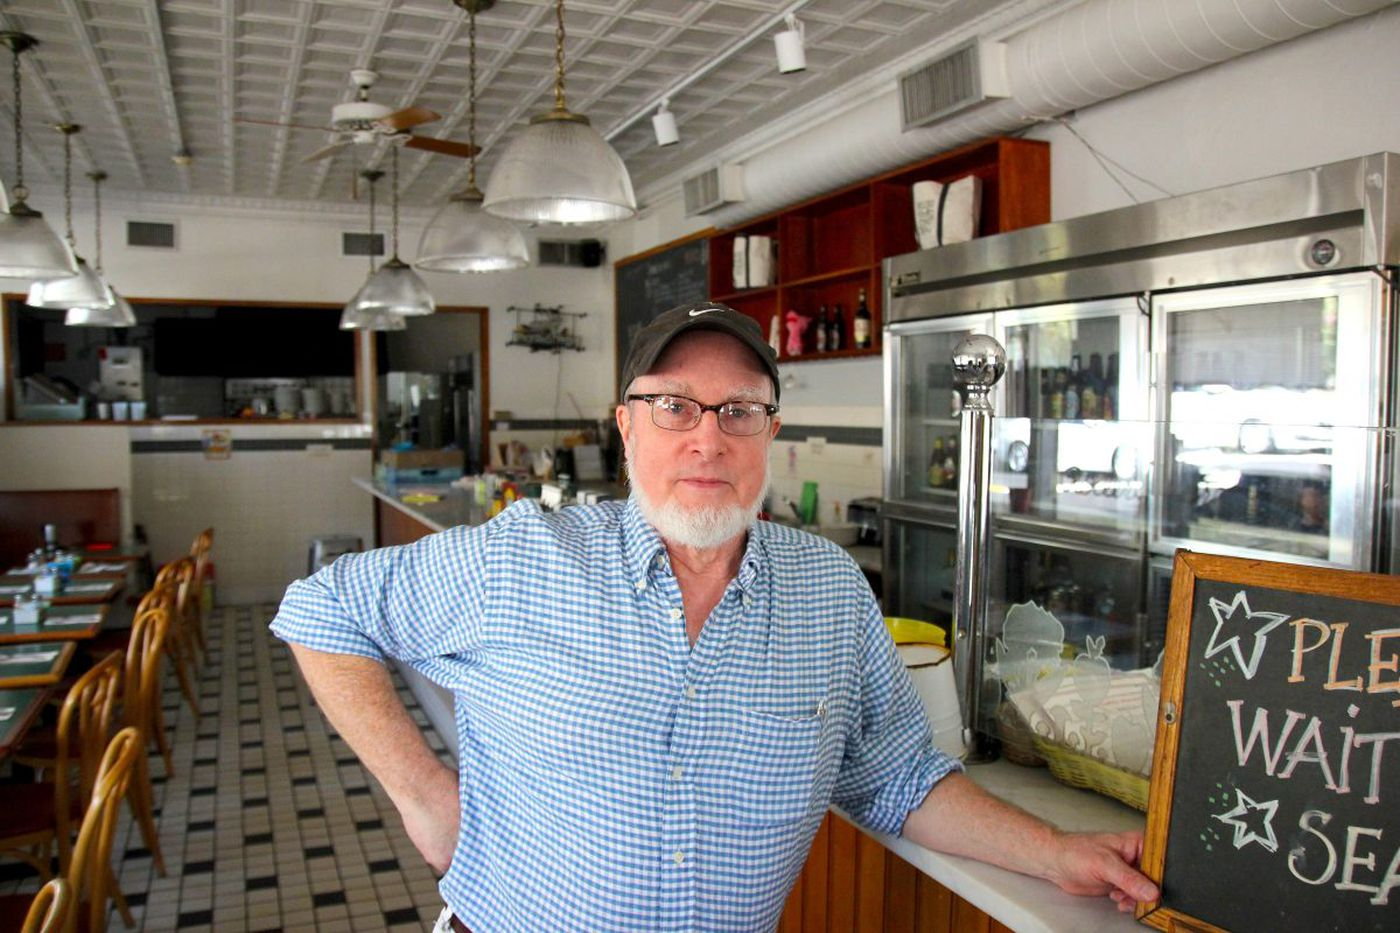 Don't count out chef Paul Roller, even with shaky knees